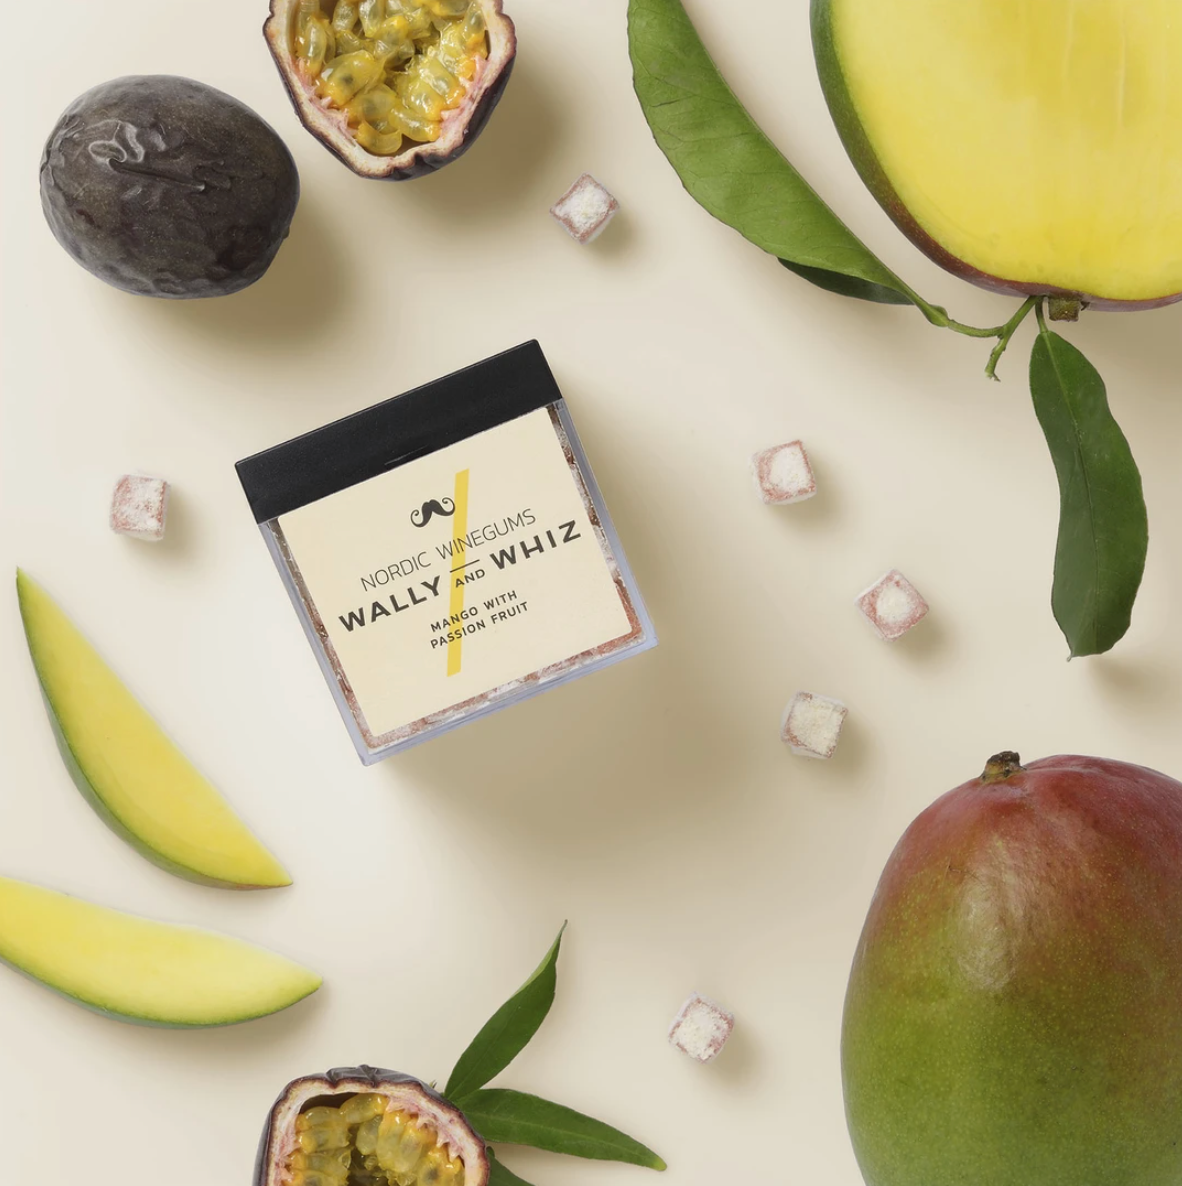 Wally and Whiz Vingummi - Mango med Passionsfrugt, cube